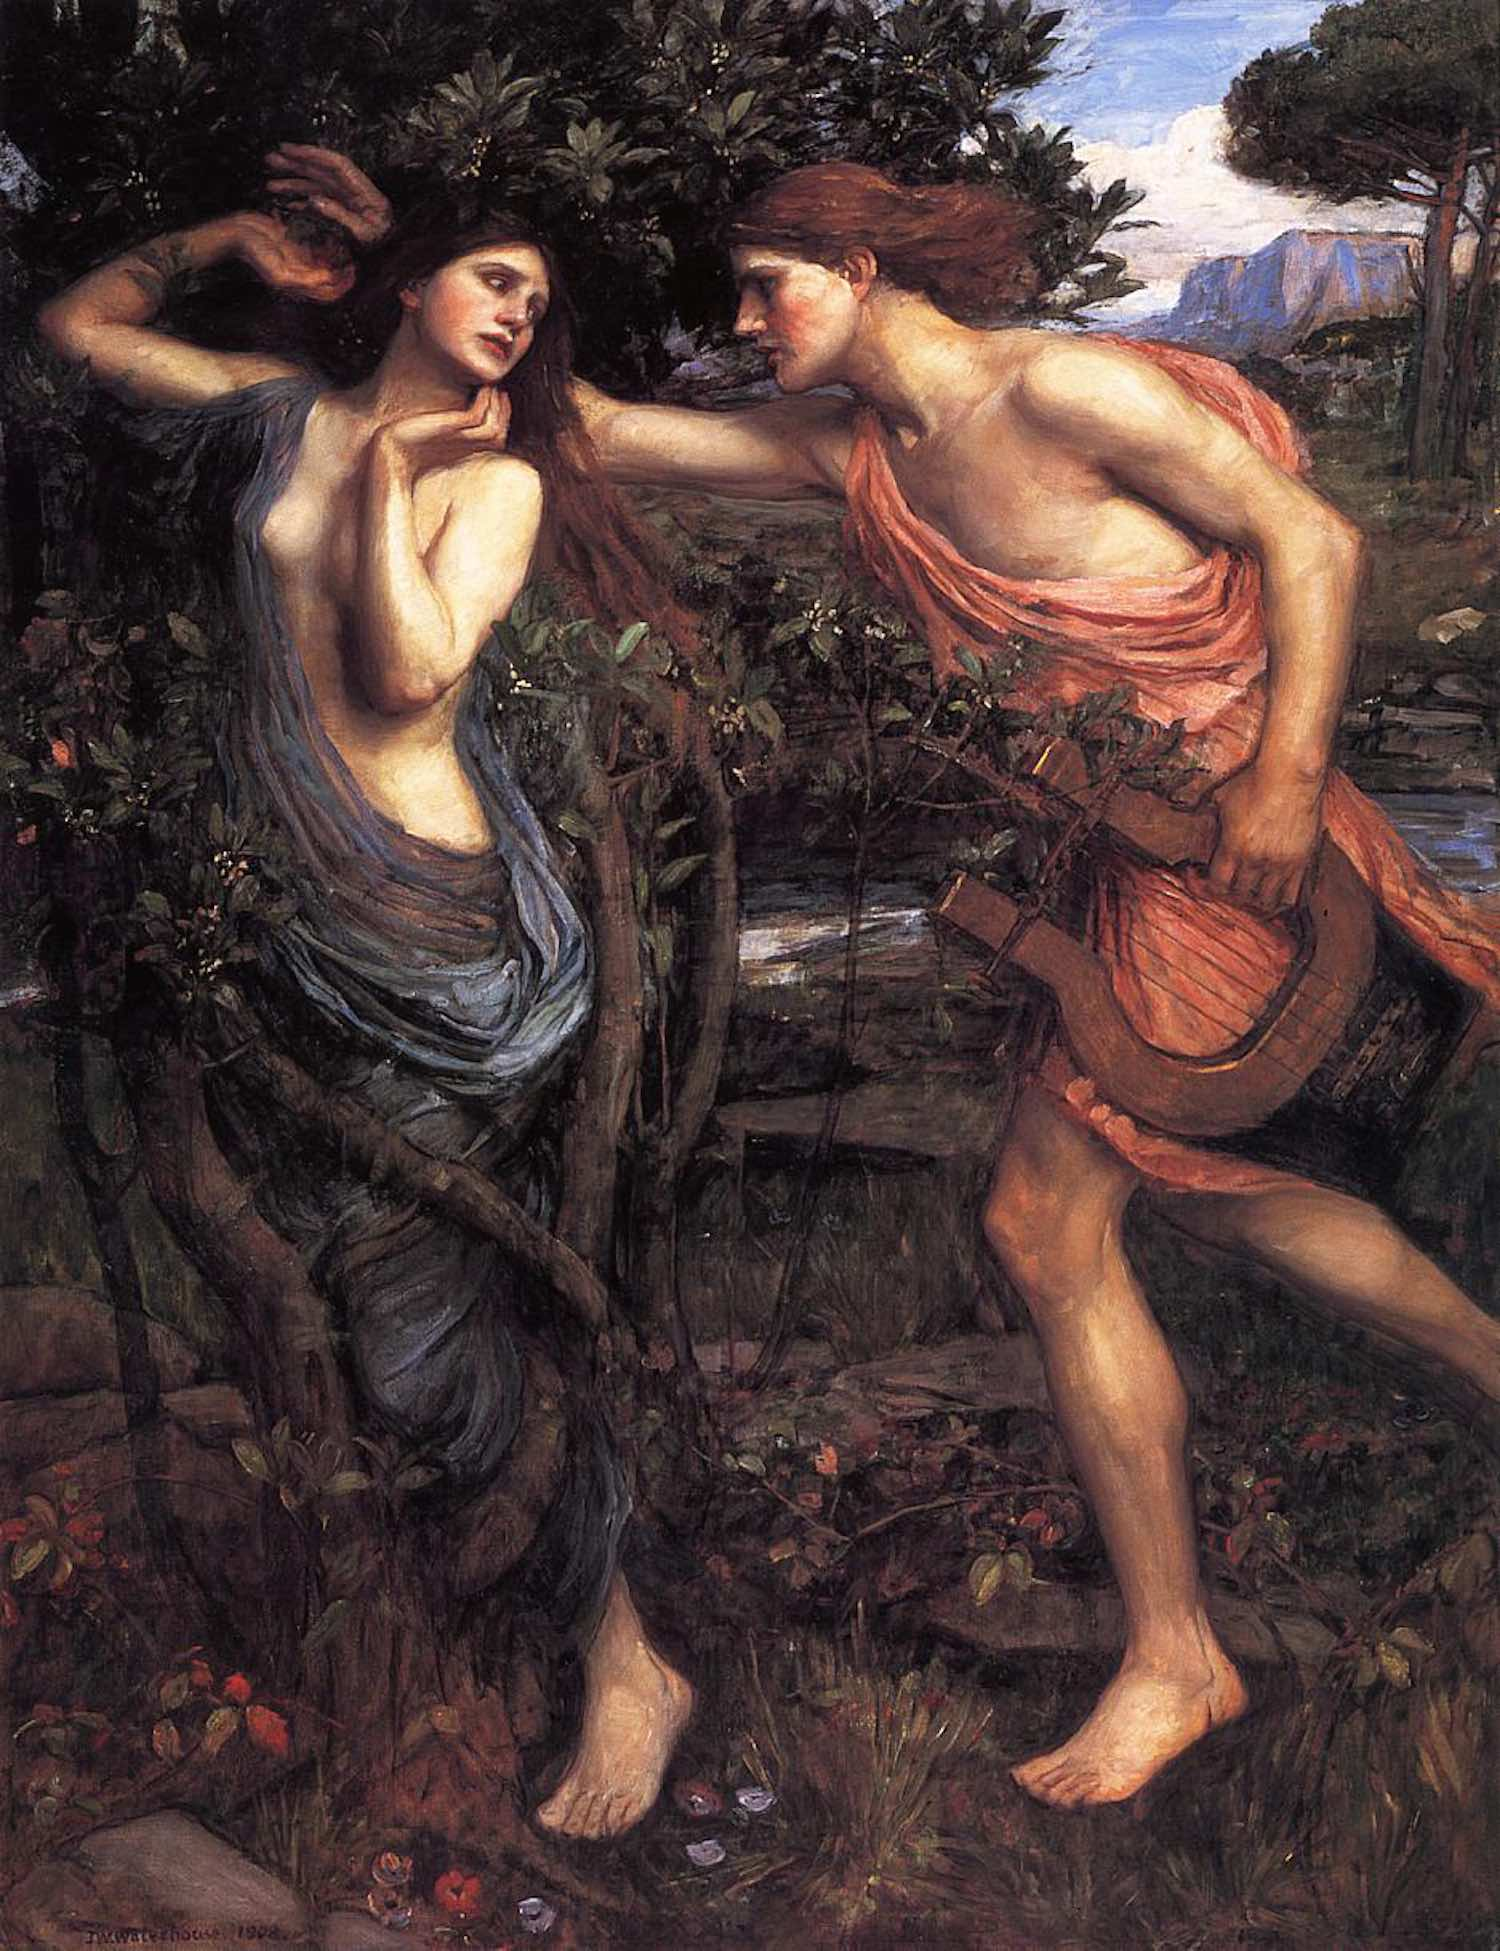 Apollo and Daphne, painting by John William Waterhouse